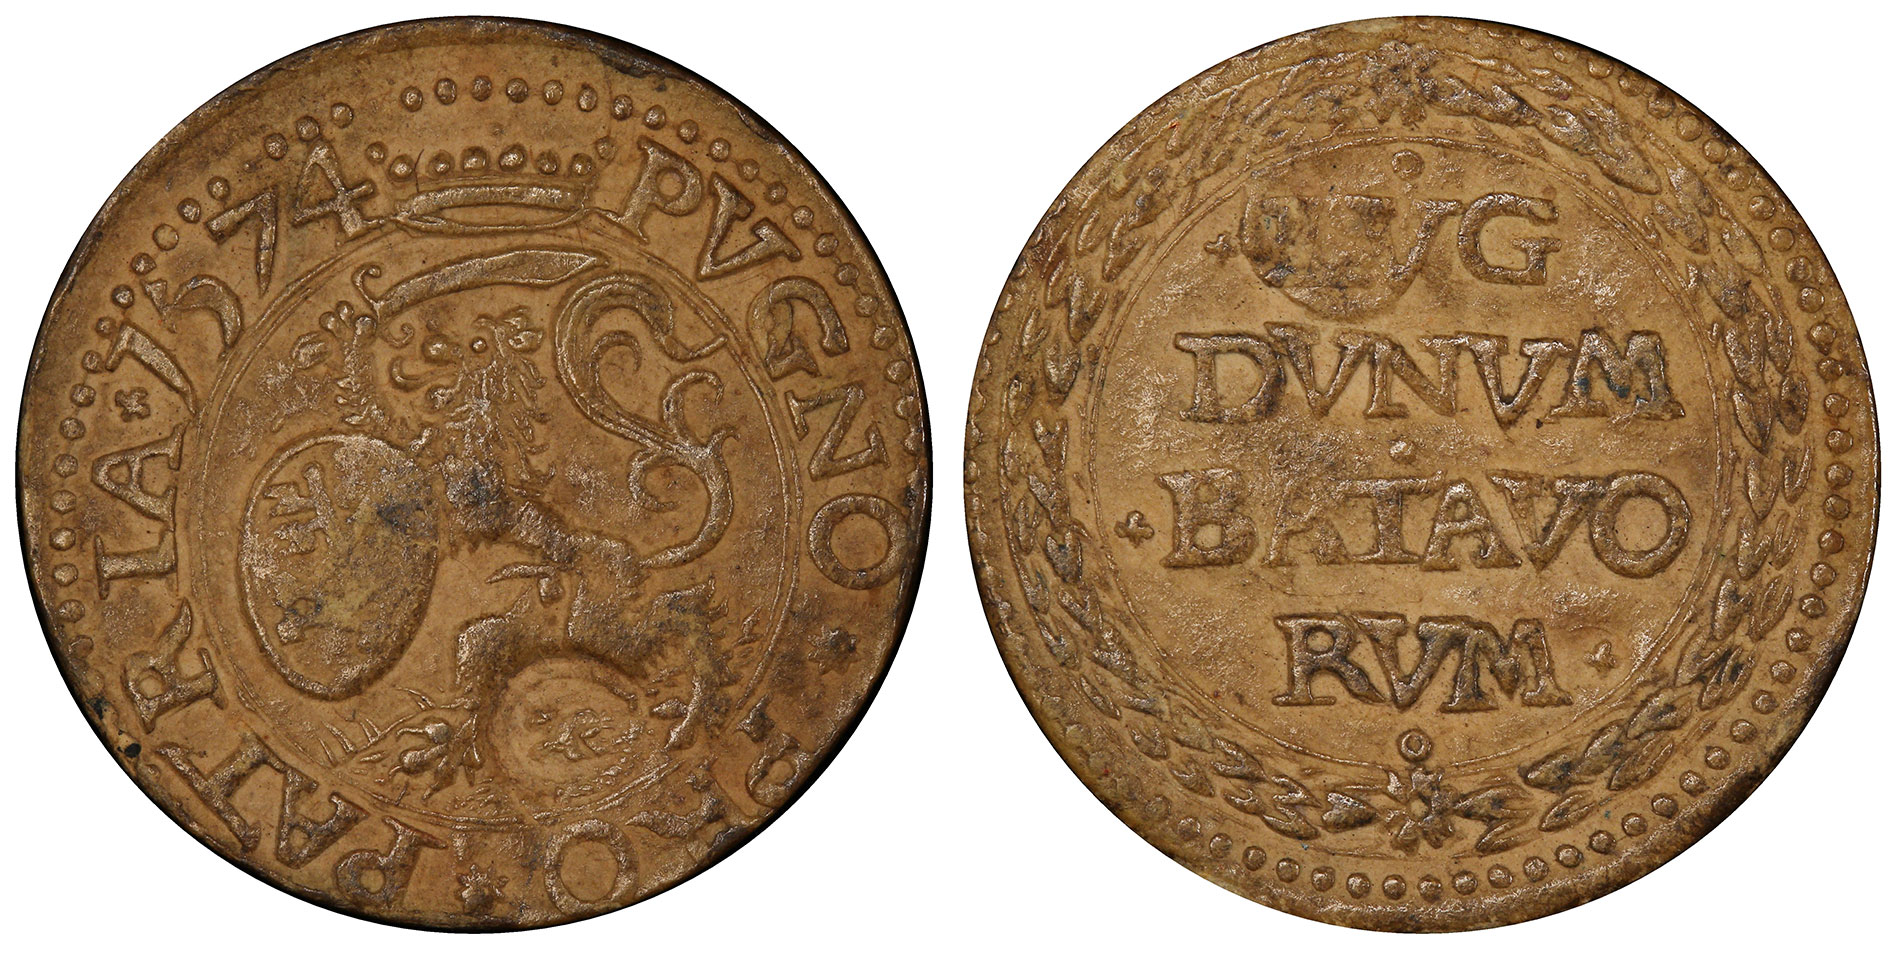 The Paper Money Coin of 1574 - The First Paper Money of Europe: Netherlands Leiden 1574 Siege ¼ Gulden, PCGS XF40